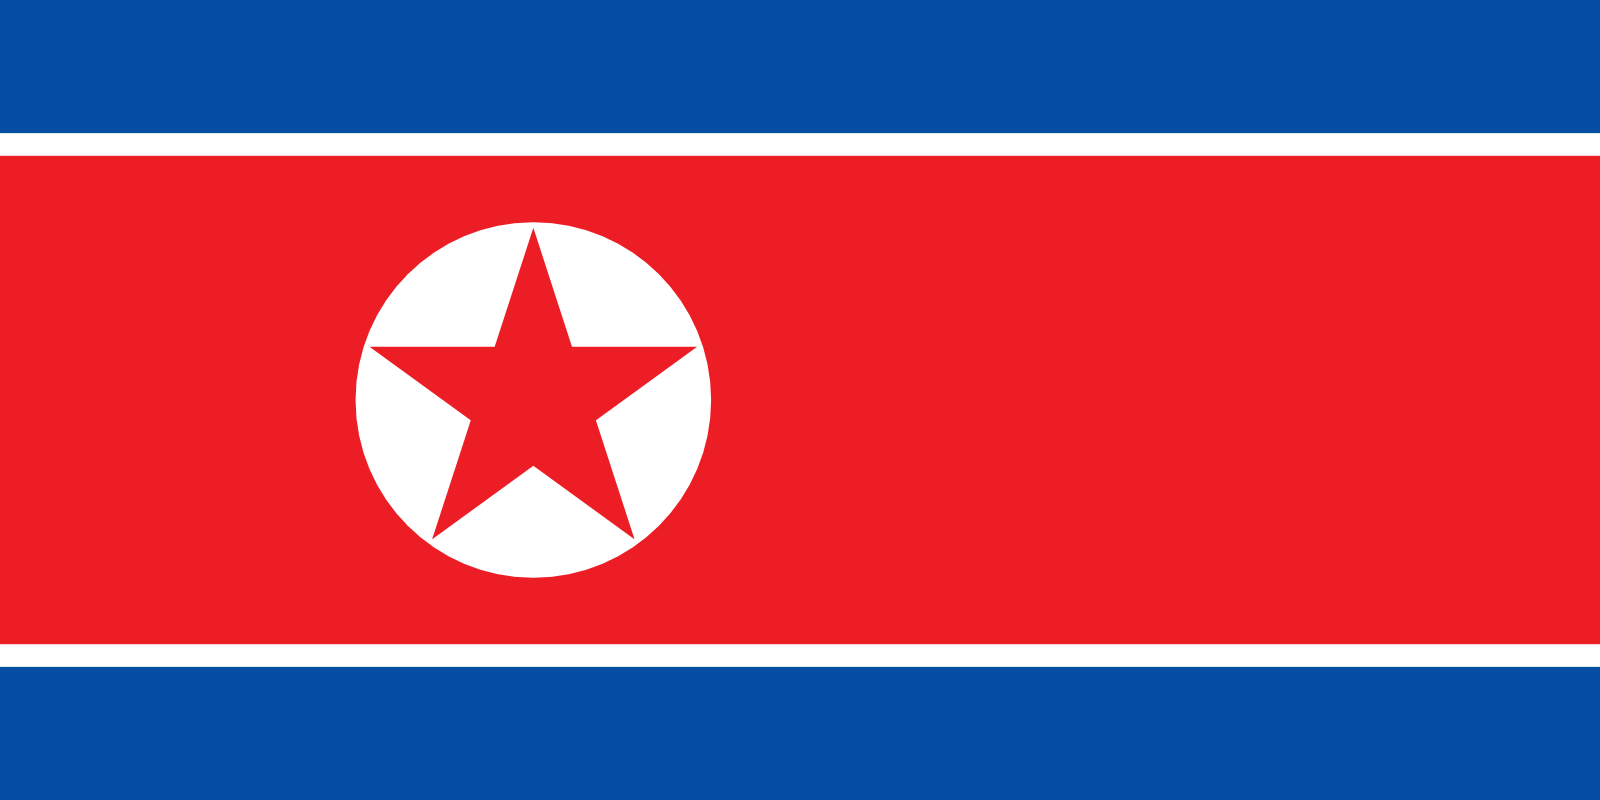 North Korea AFC Asian Cup